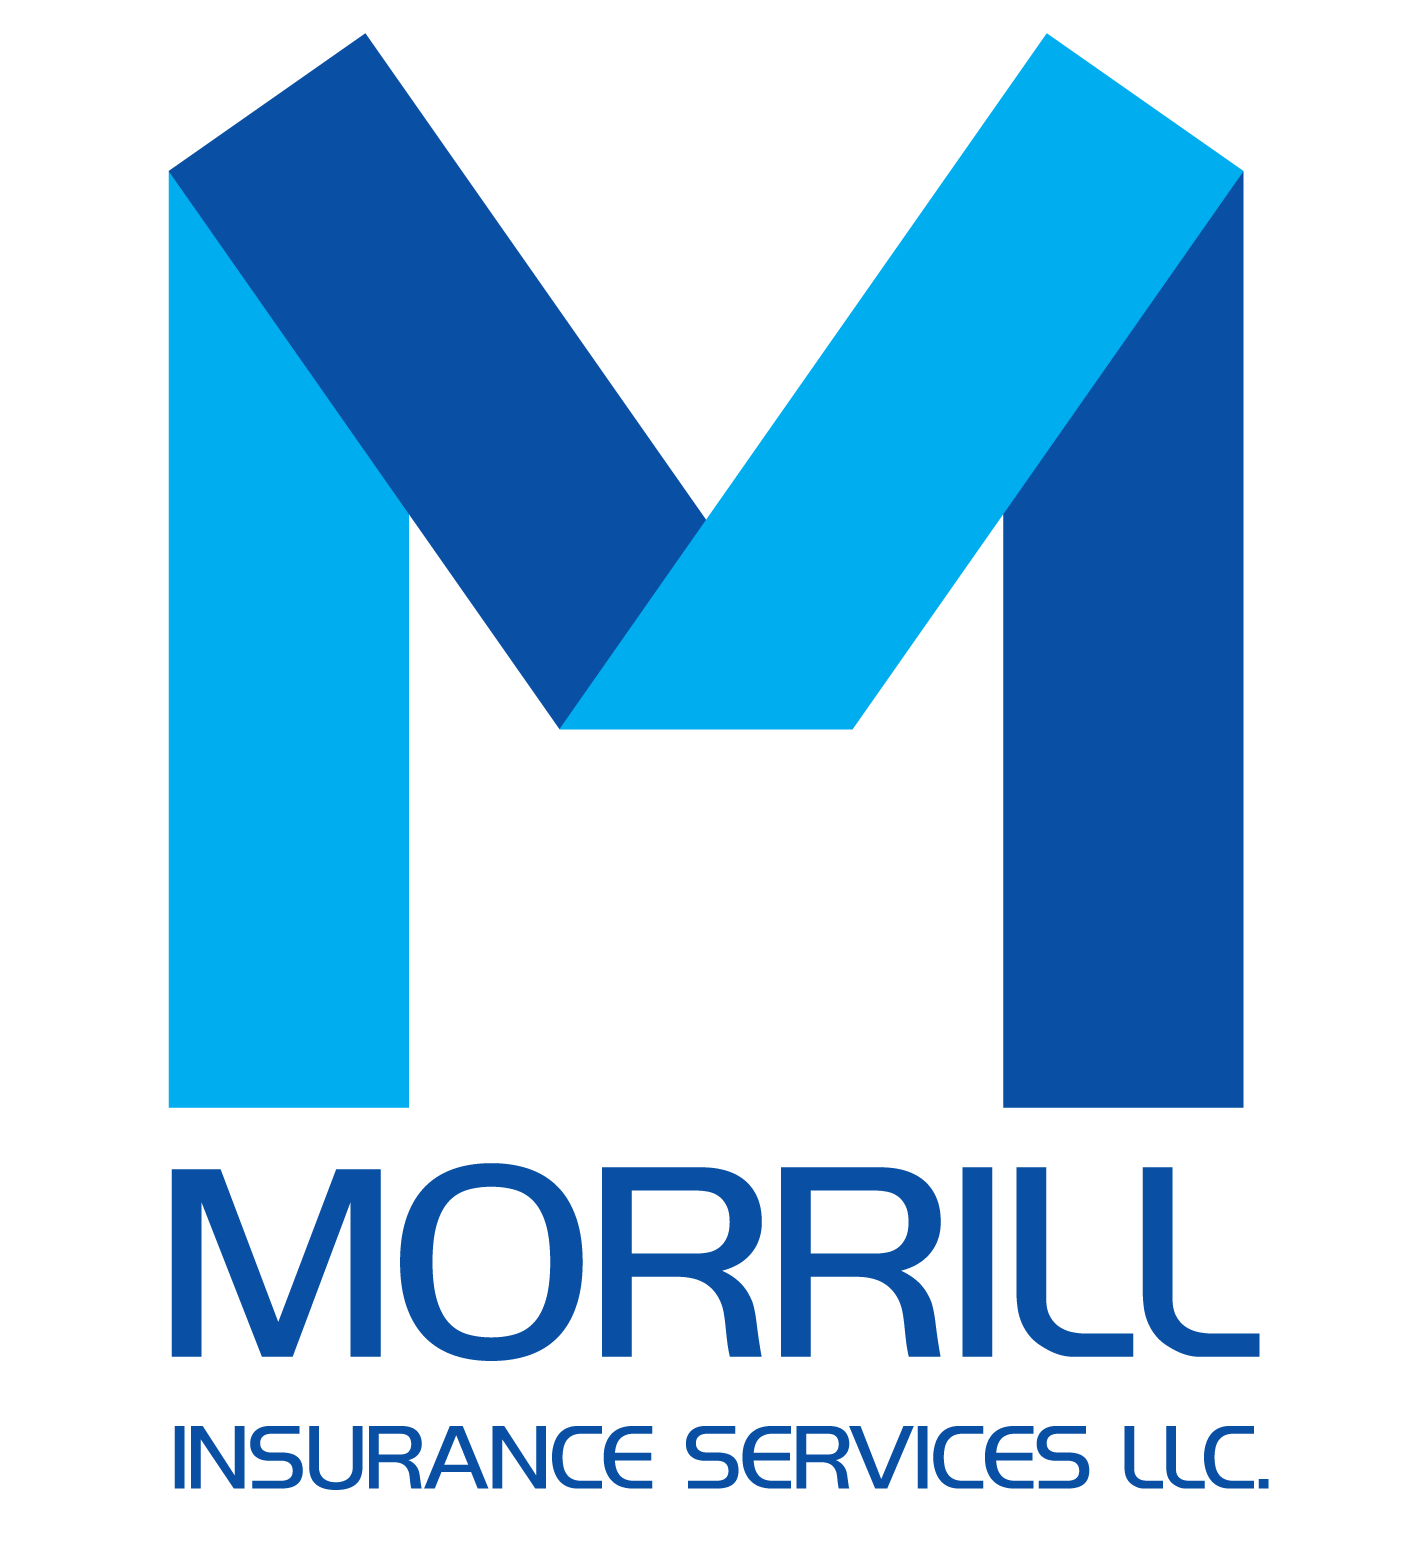 Morrill Insurance Services LLC